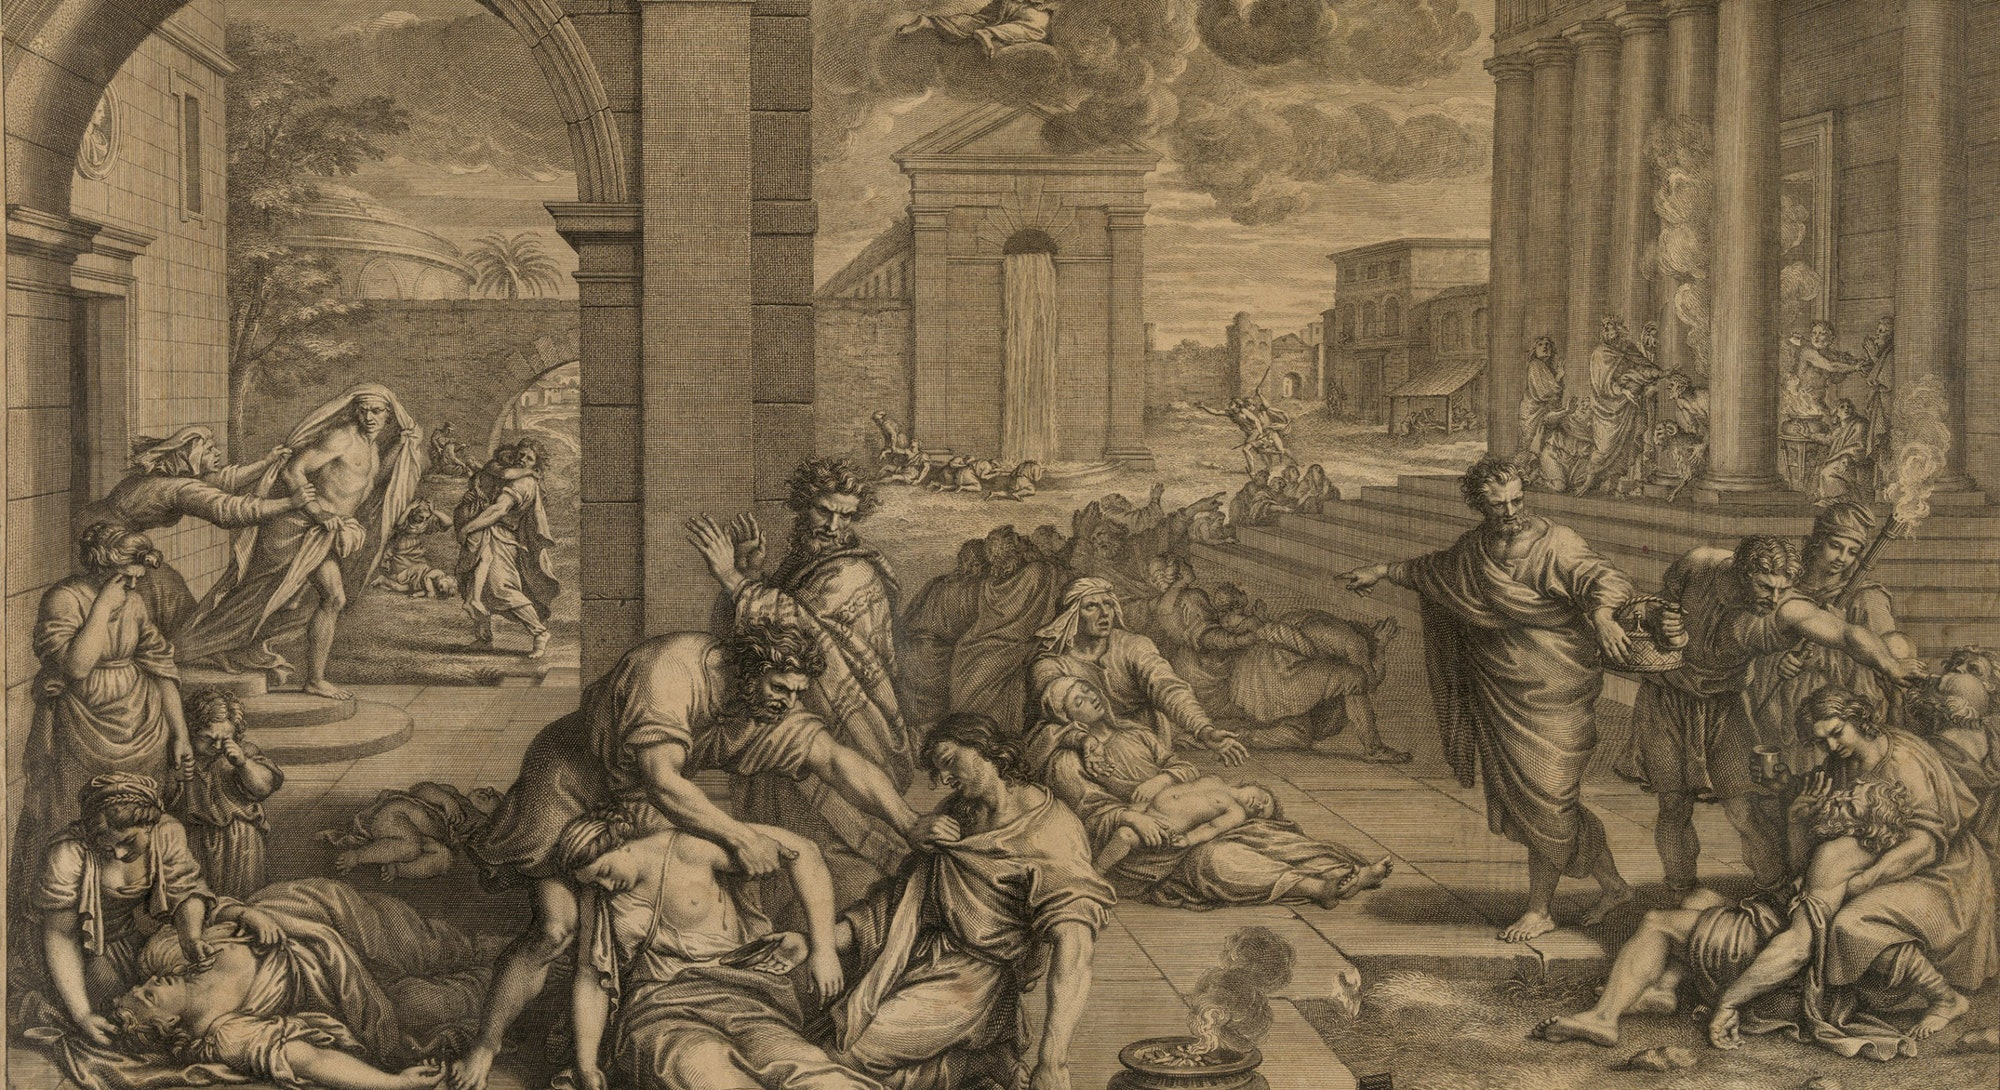 A flying angel spreads God's destruction over classical setting. In the foreground among the dying people and animals is a small furnace used in Europe to cleanse the air of disease vapors.